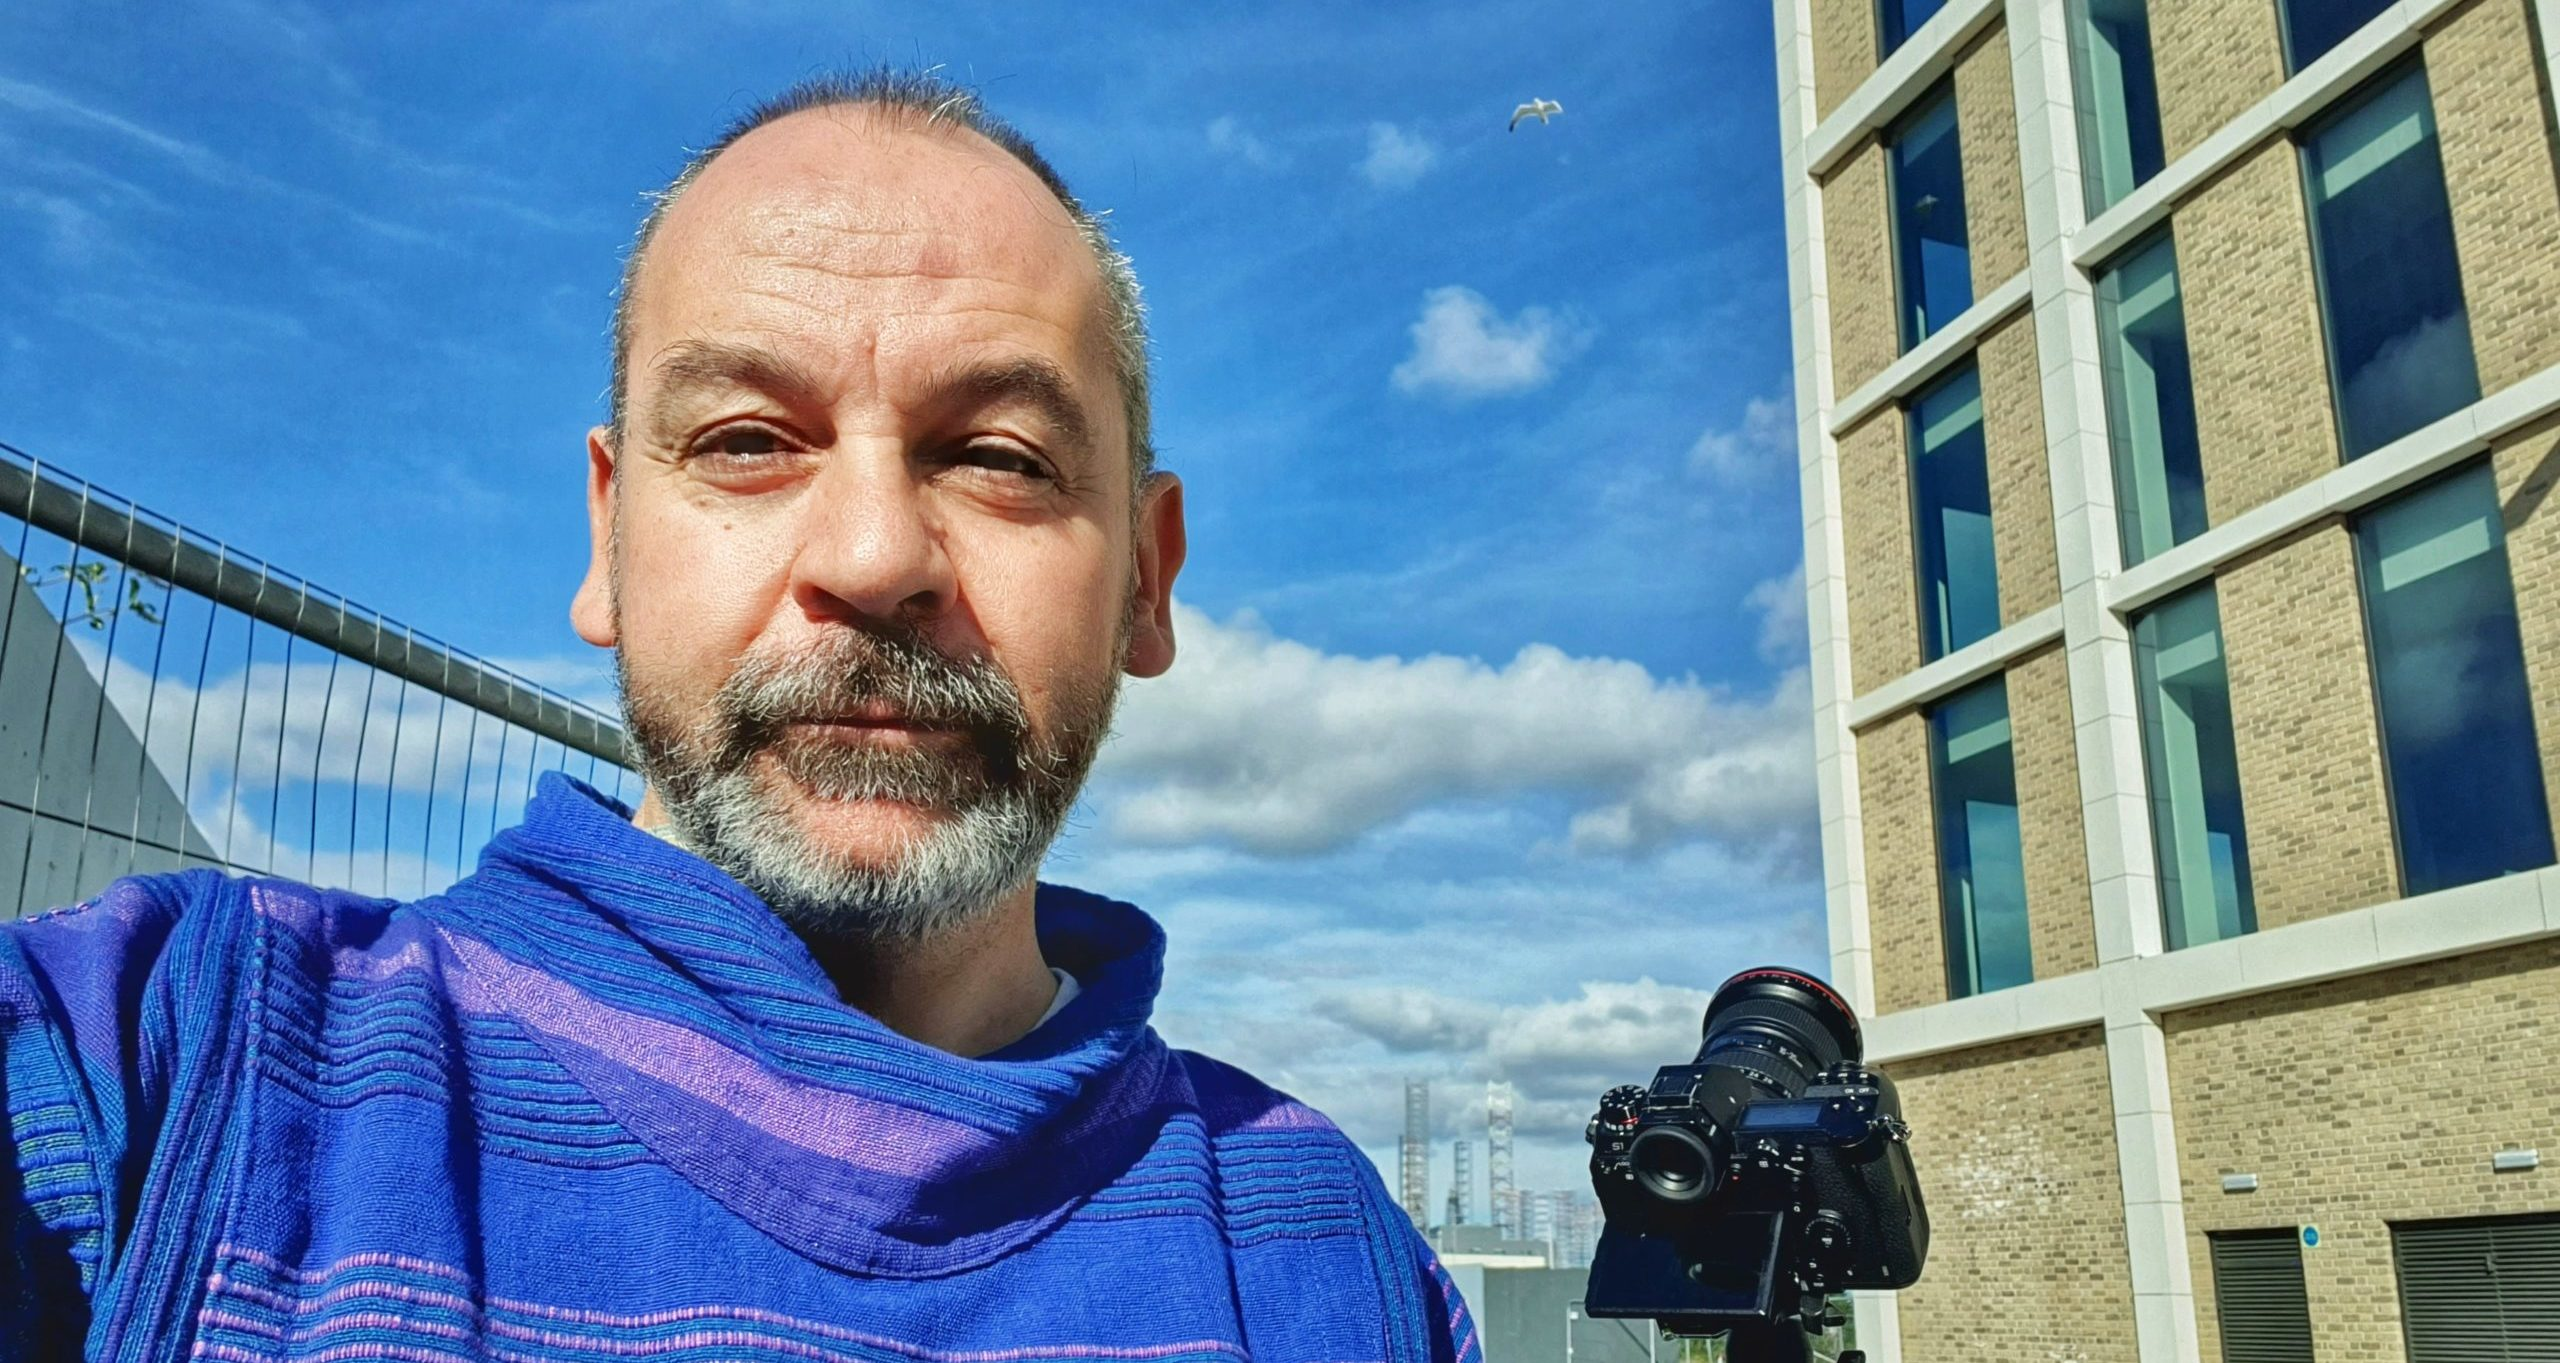 Dylan Drummond is working on a series of short films about Dundee in lockdown.